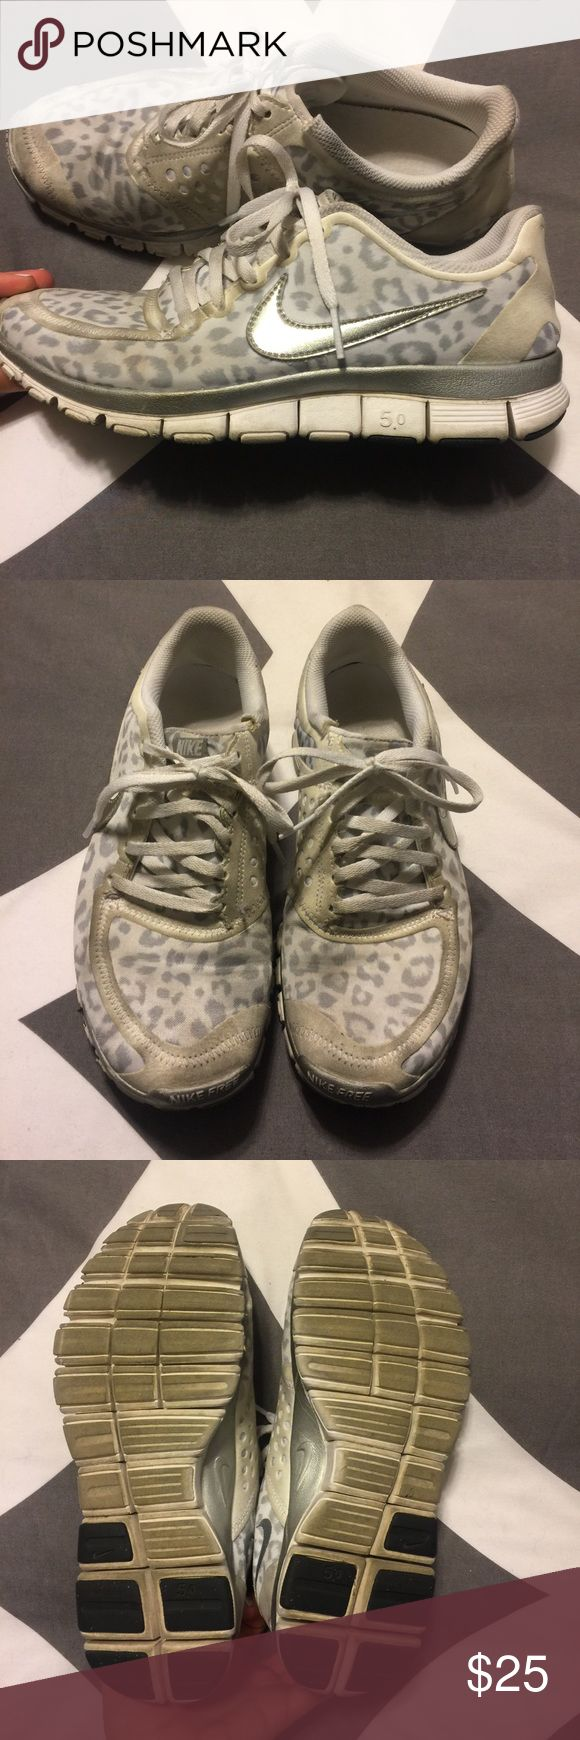 White Leopard Nike Free 5.0 V4 Size 8.5 Worn but still in very wearable condition! Nike Shoes Athletic Shoes